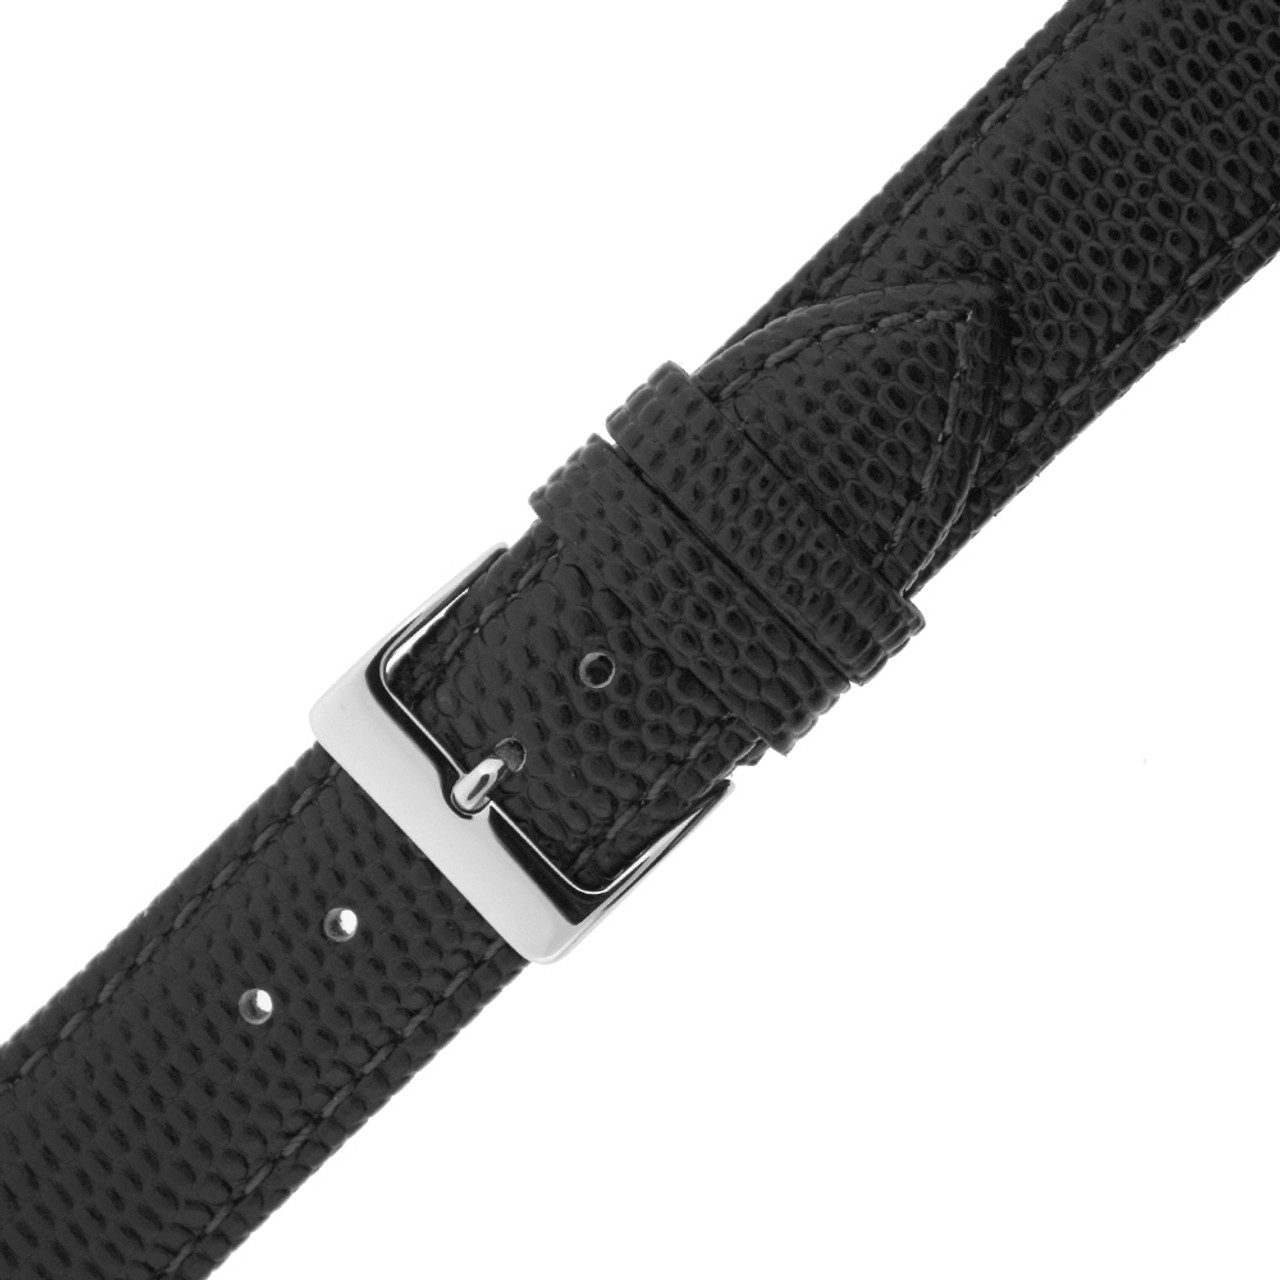 Watch Band Genuine Leather Lizard Grain Black Quick Release Built-in Pins